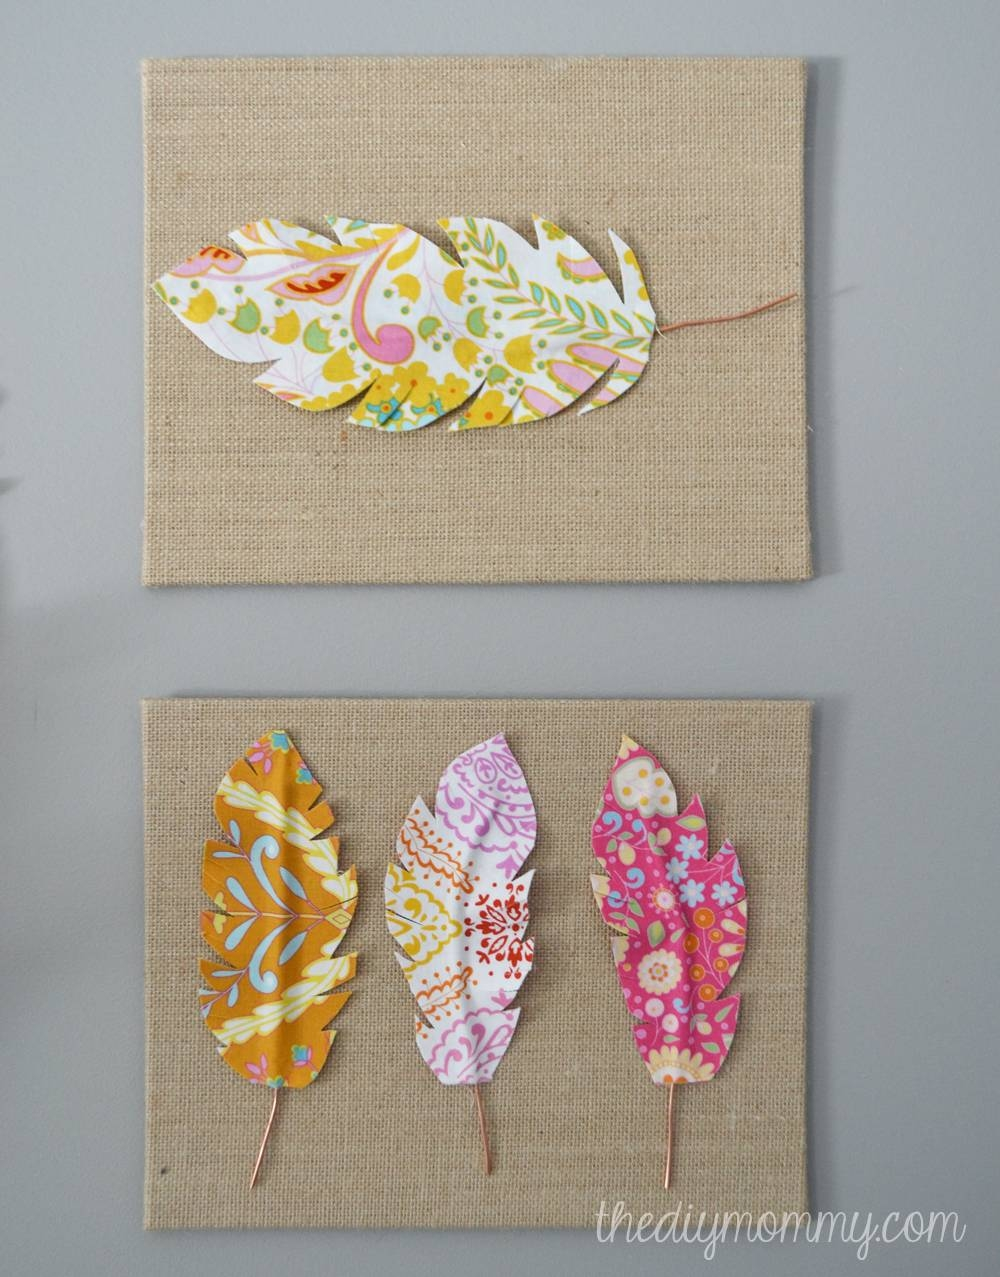 Make Fabric Feather Wall Art | The Diy Mommy With Regard To Recent Fabric Canvas Wall Art (View 12 of 20)